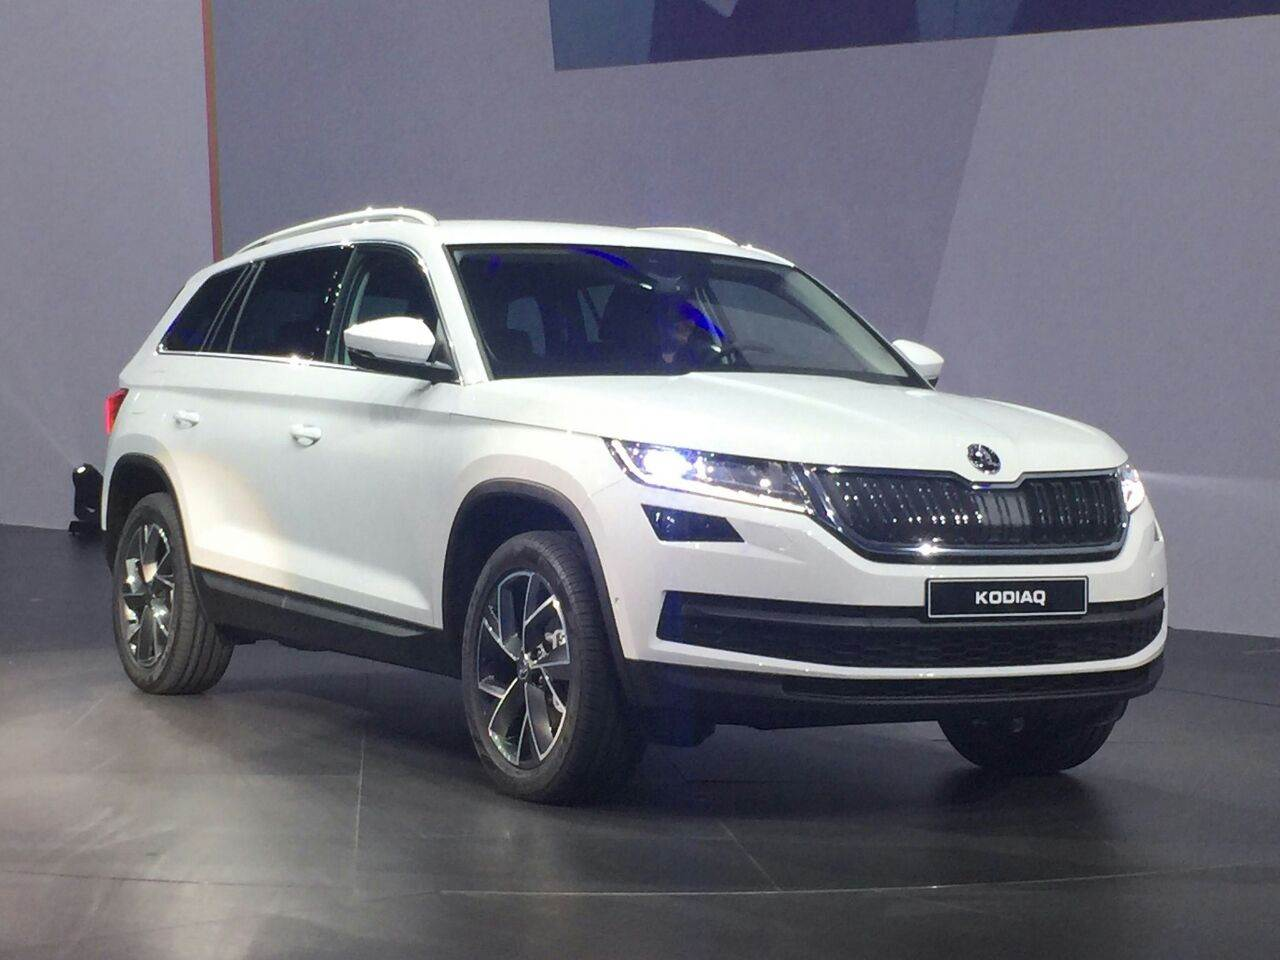 India-bound Skoda Kodiaq: 10 things to know